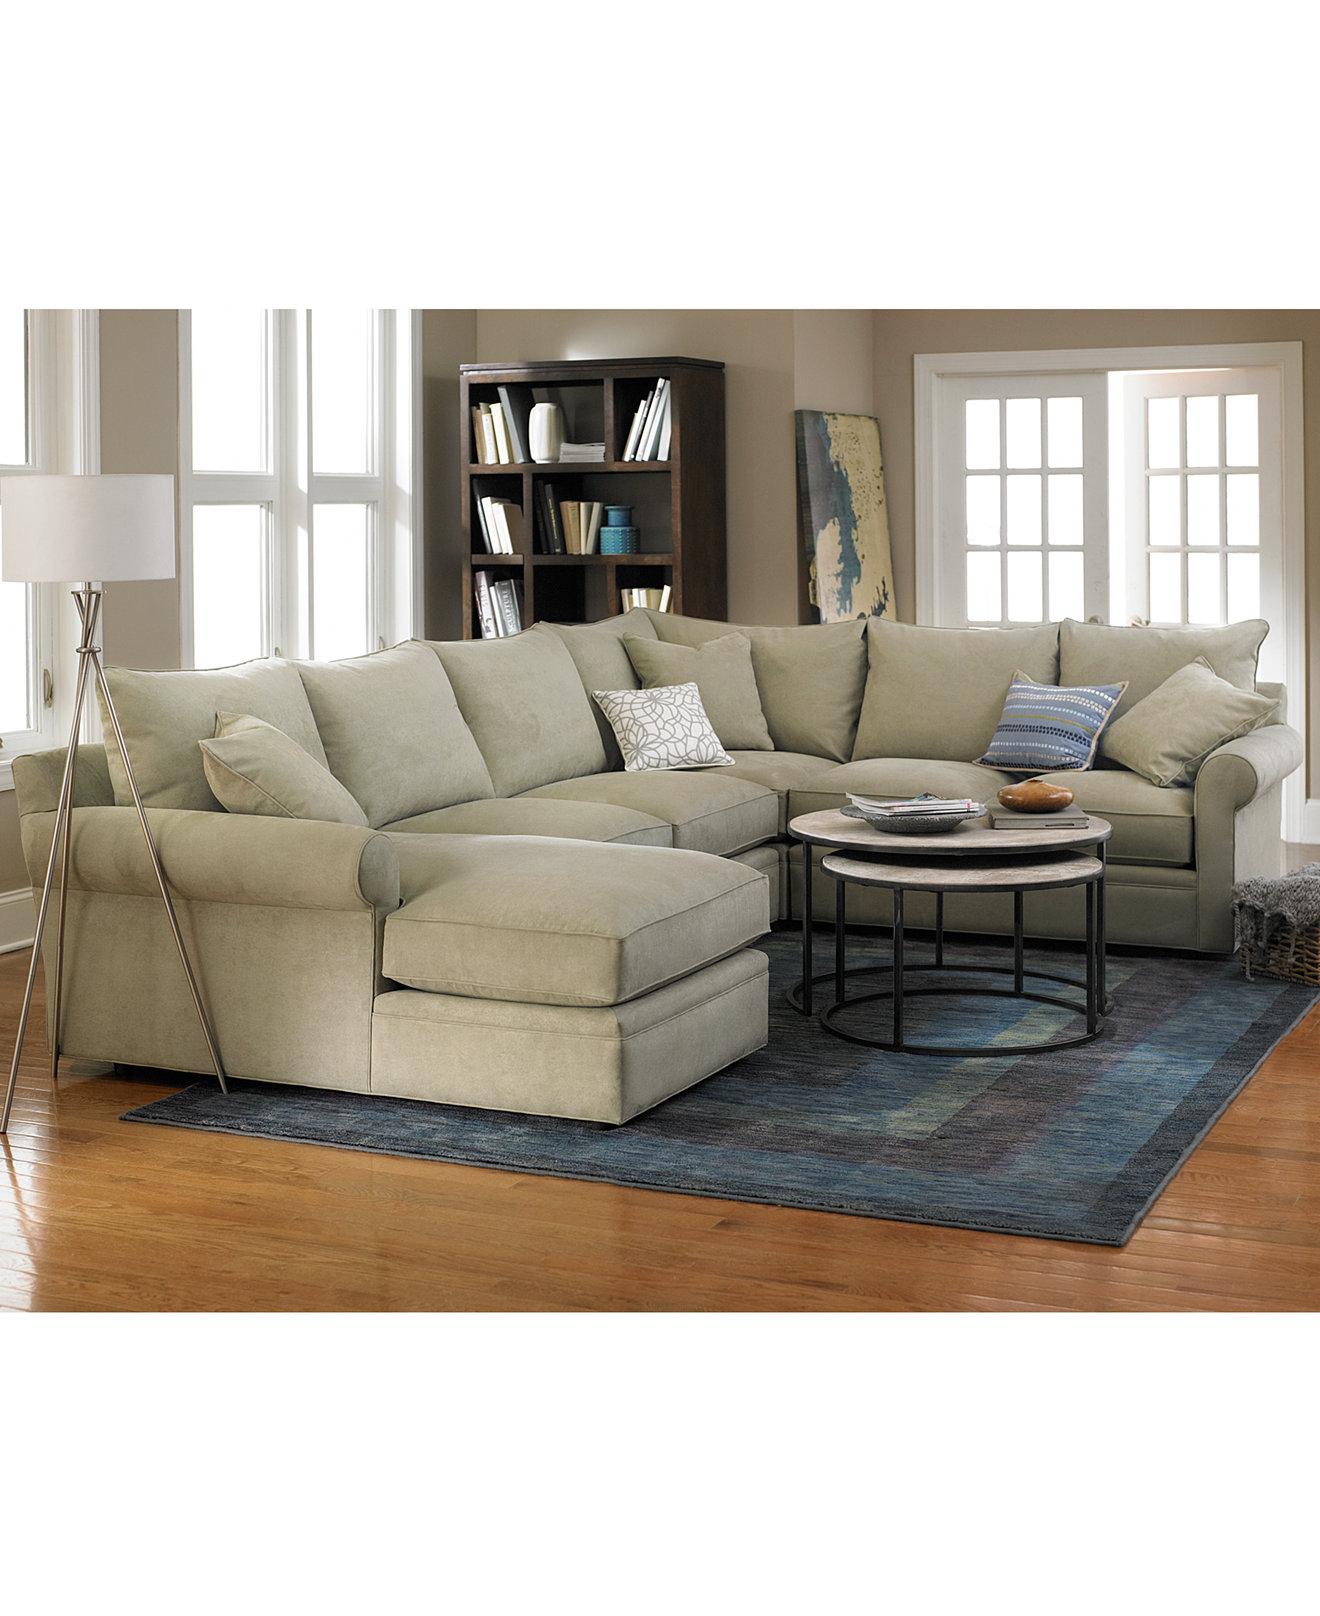 Doss Fabric Sectional Living Room Furniture Collection - Living Room Furniture Sets - Macy's